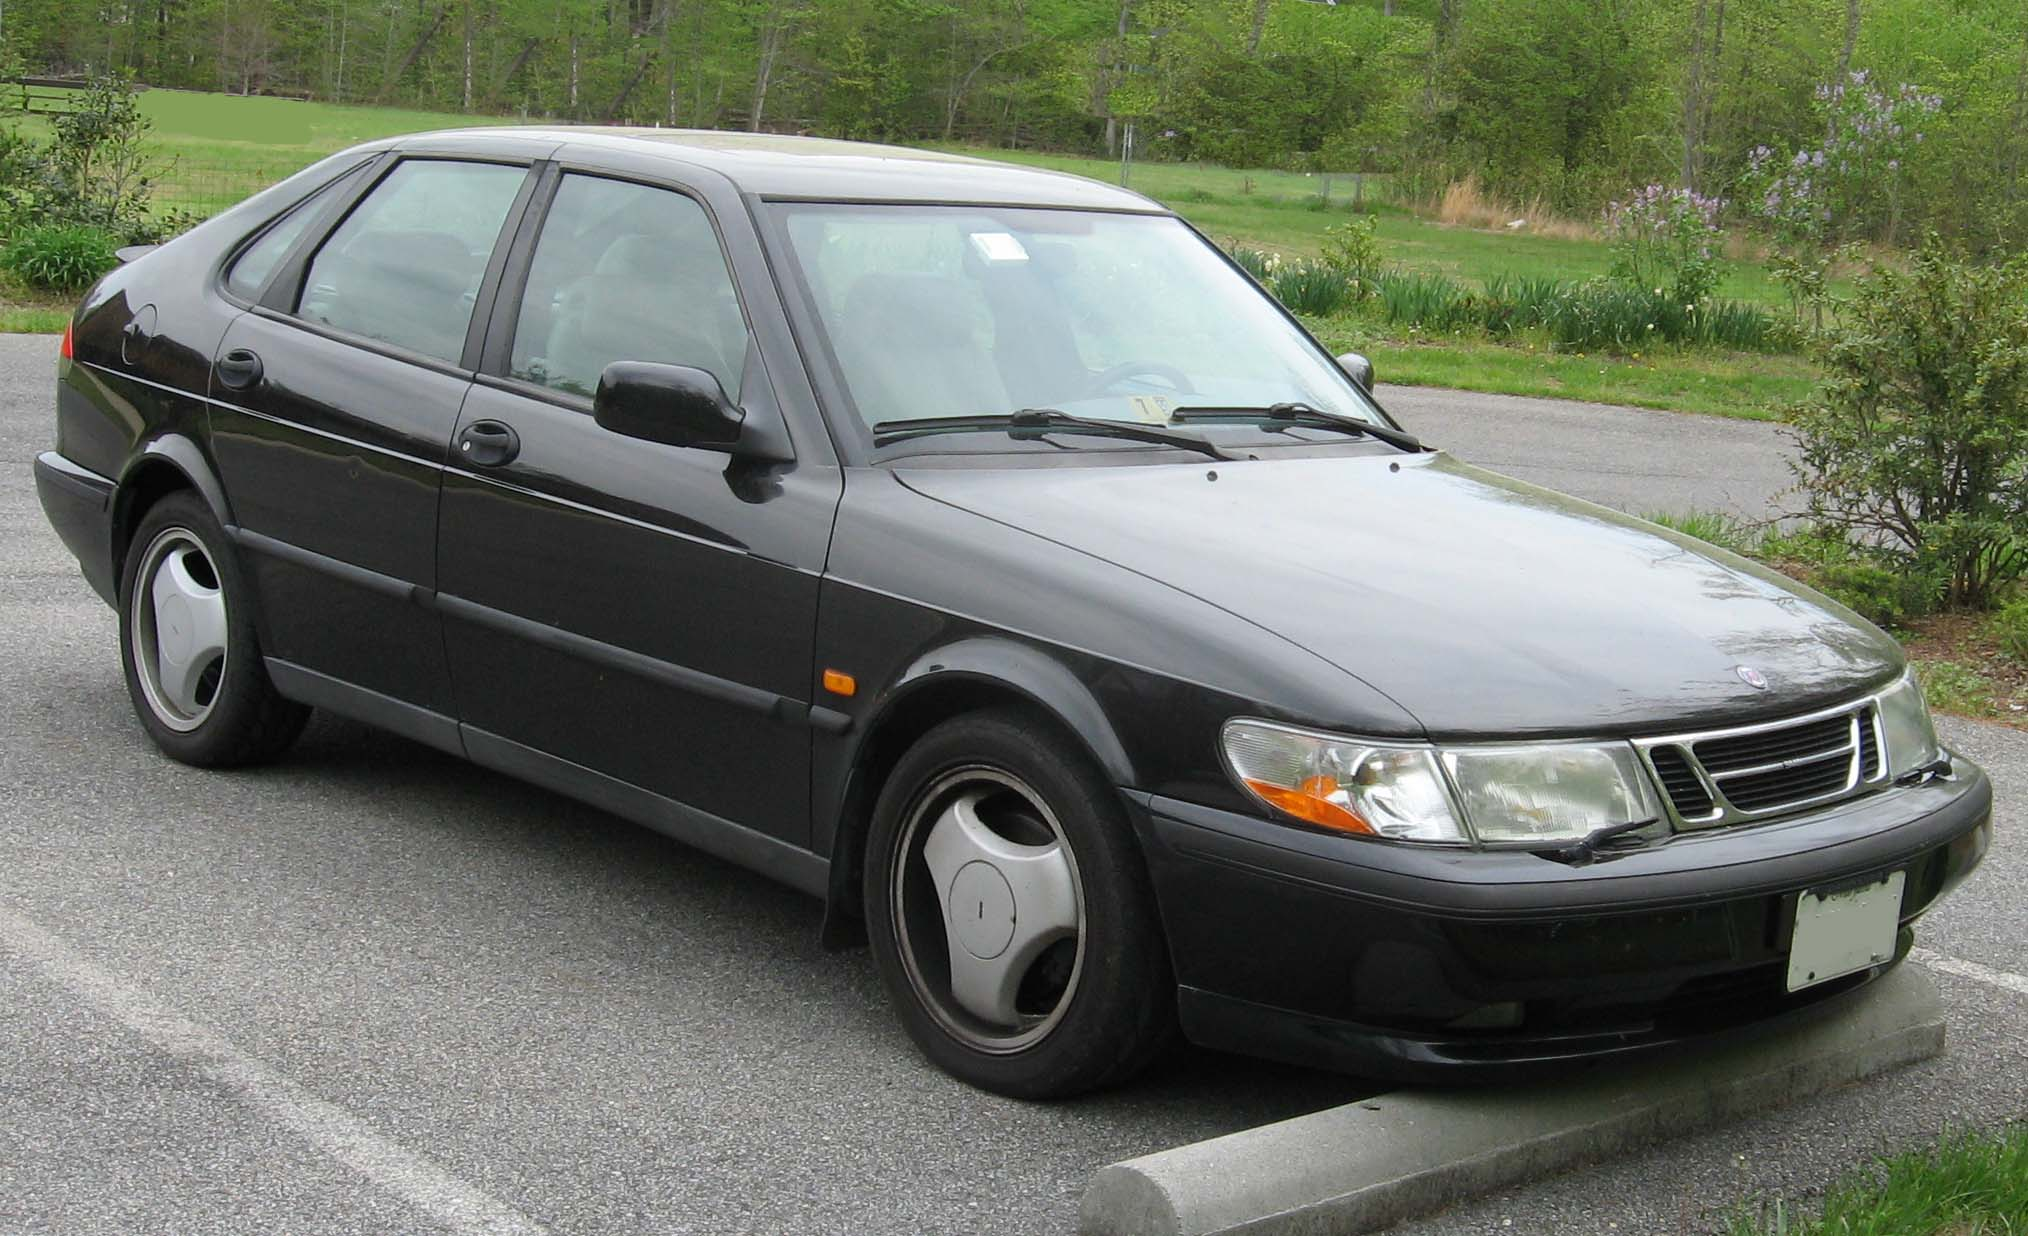 saab 900 se photos reviews news specs buy car. Black Bedroom Furniture Sets. Home Design Ideas